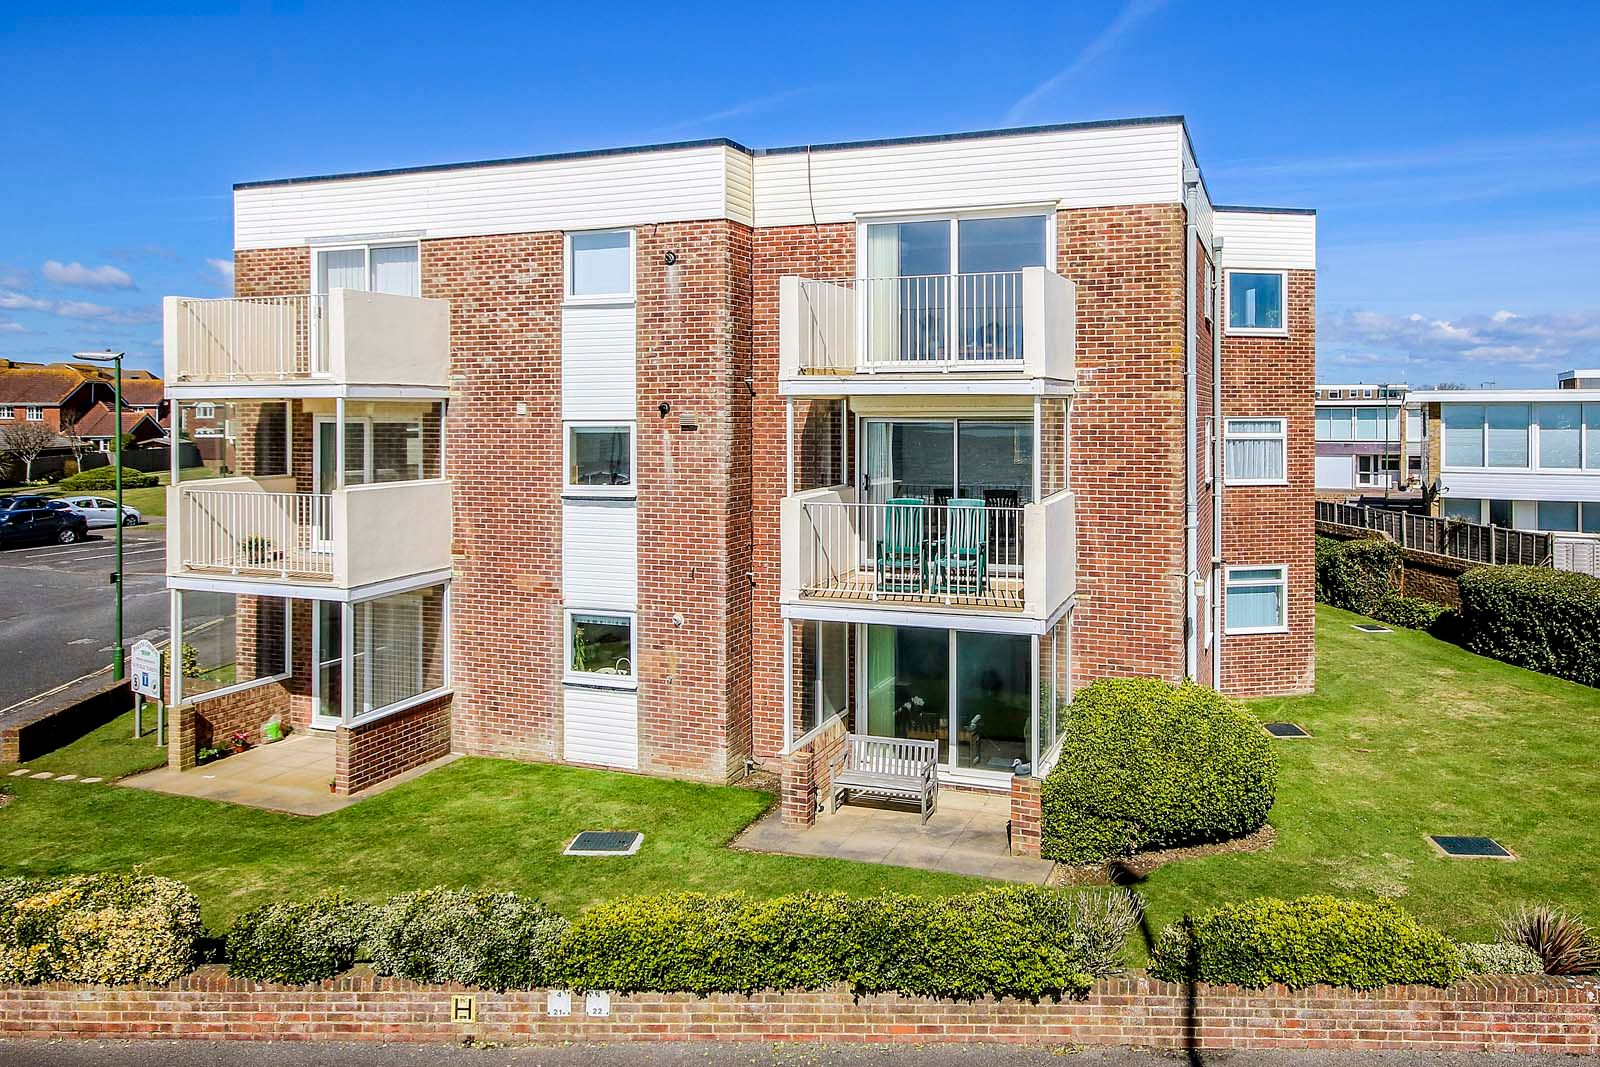 2 bed  for sale in Marama Gardens - Property Image 1